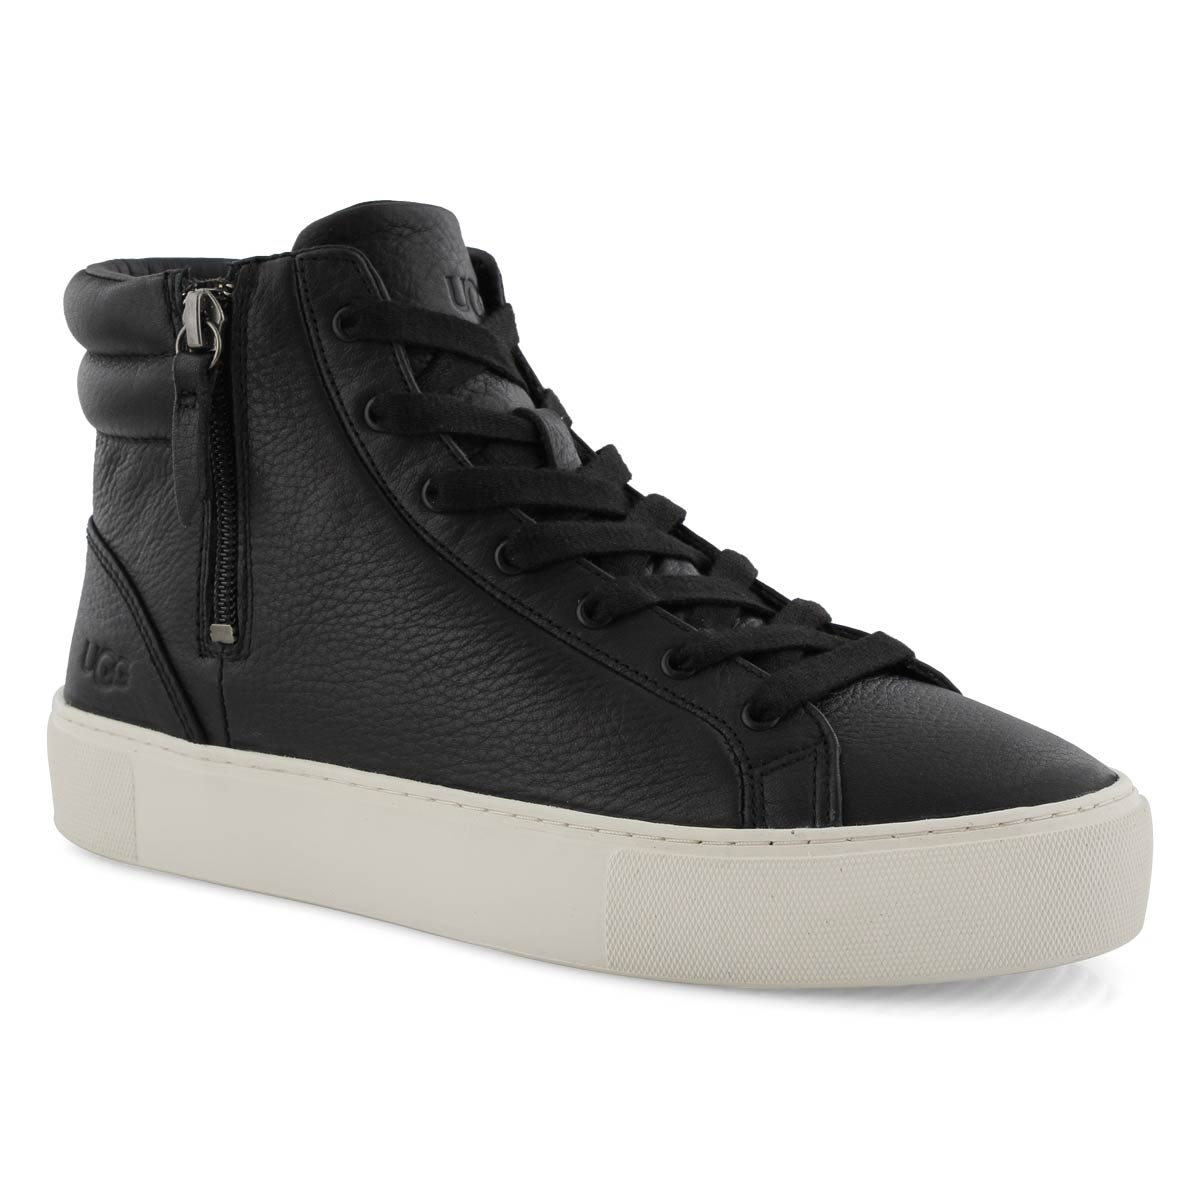 Women's OLLI black high top sneakers